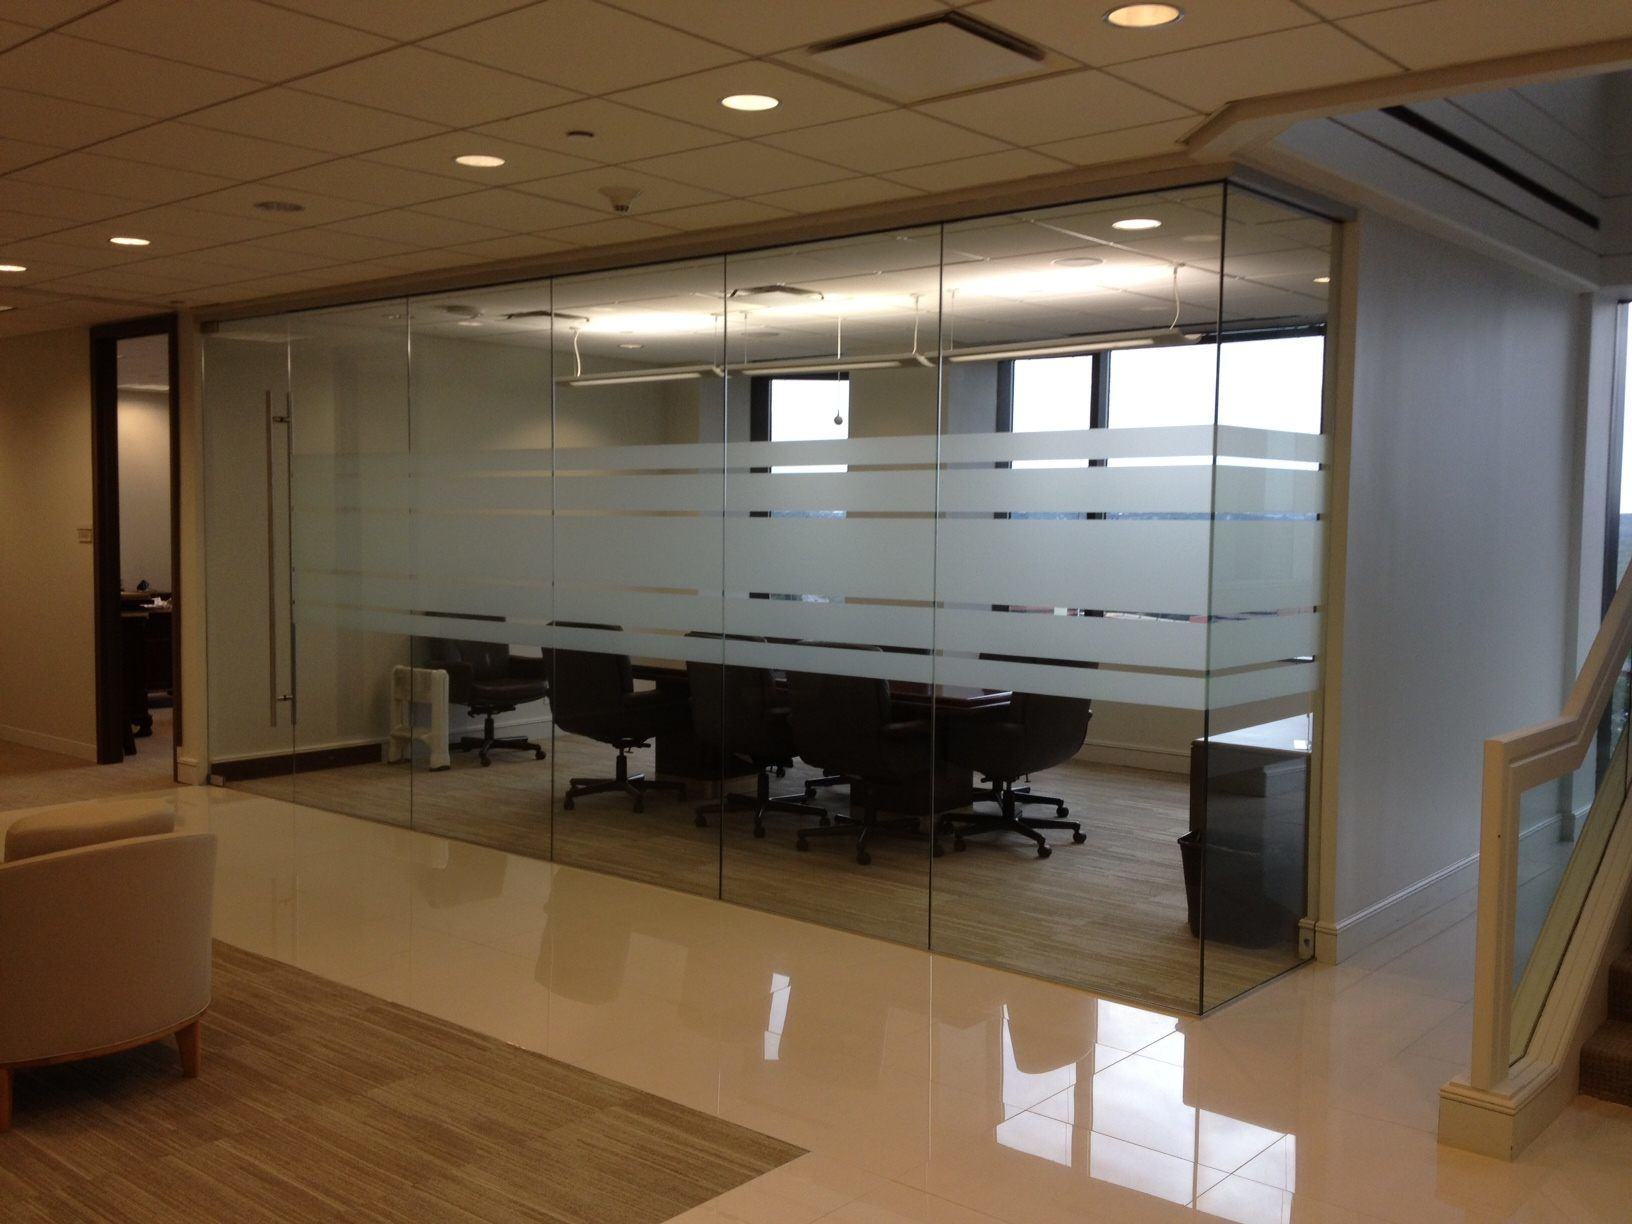 conference room glass doors - Google Search | Frosted ...